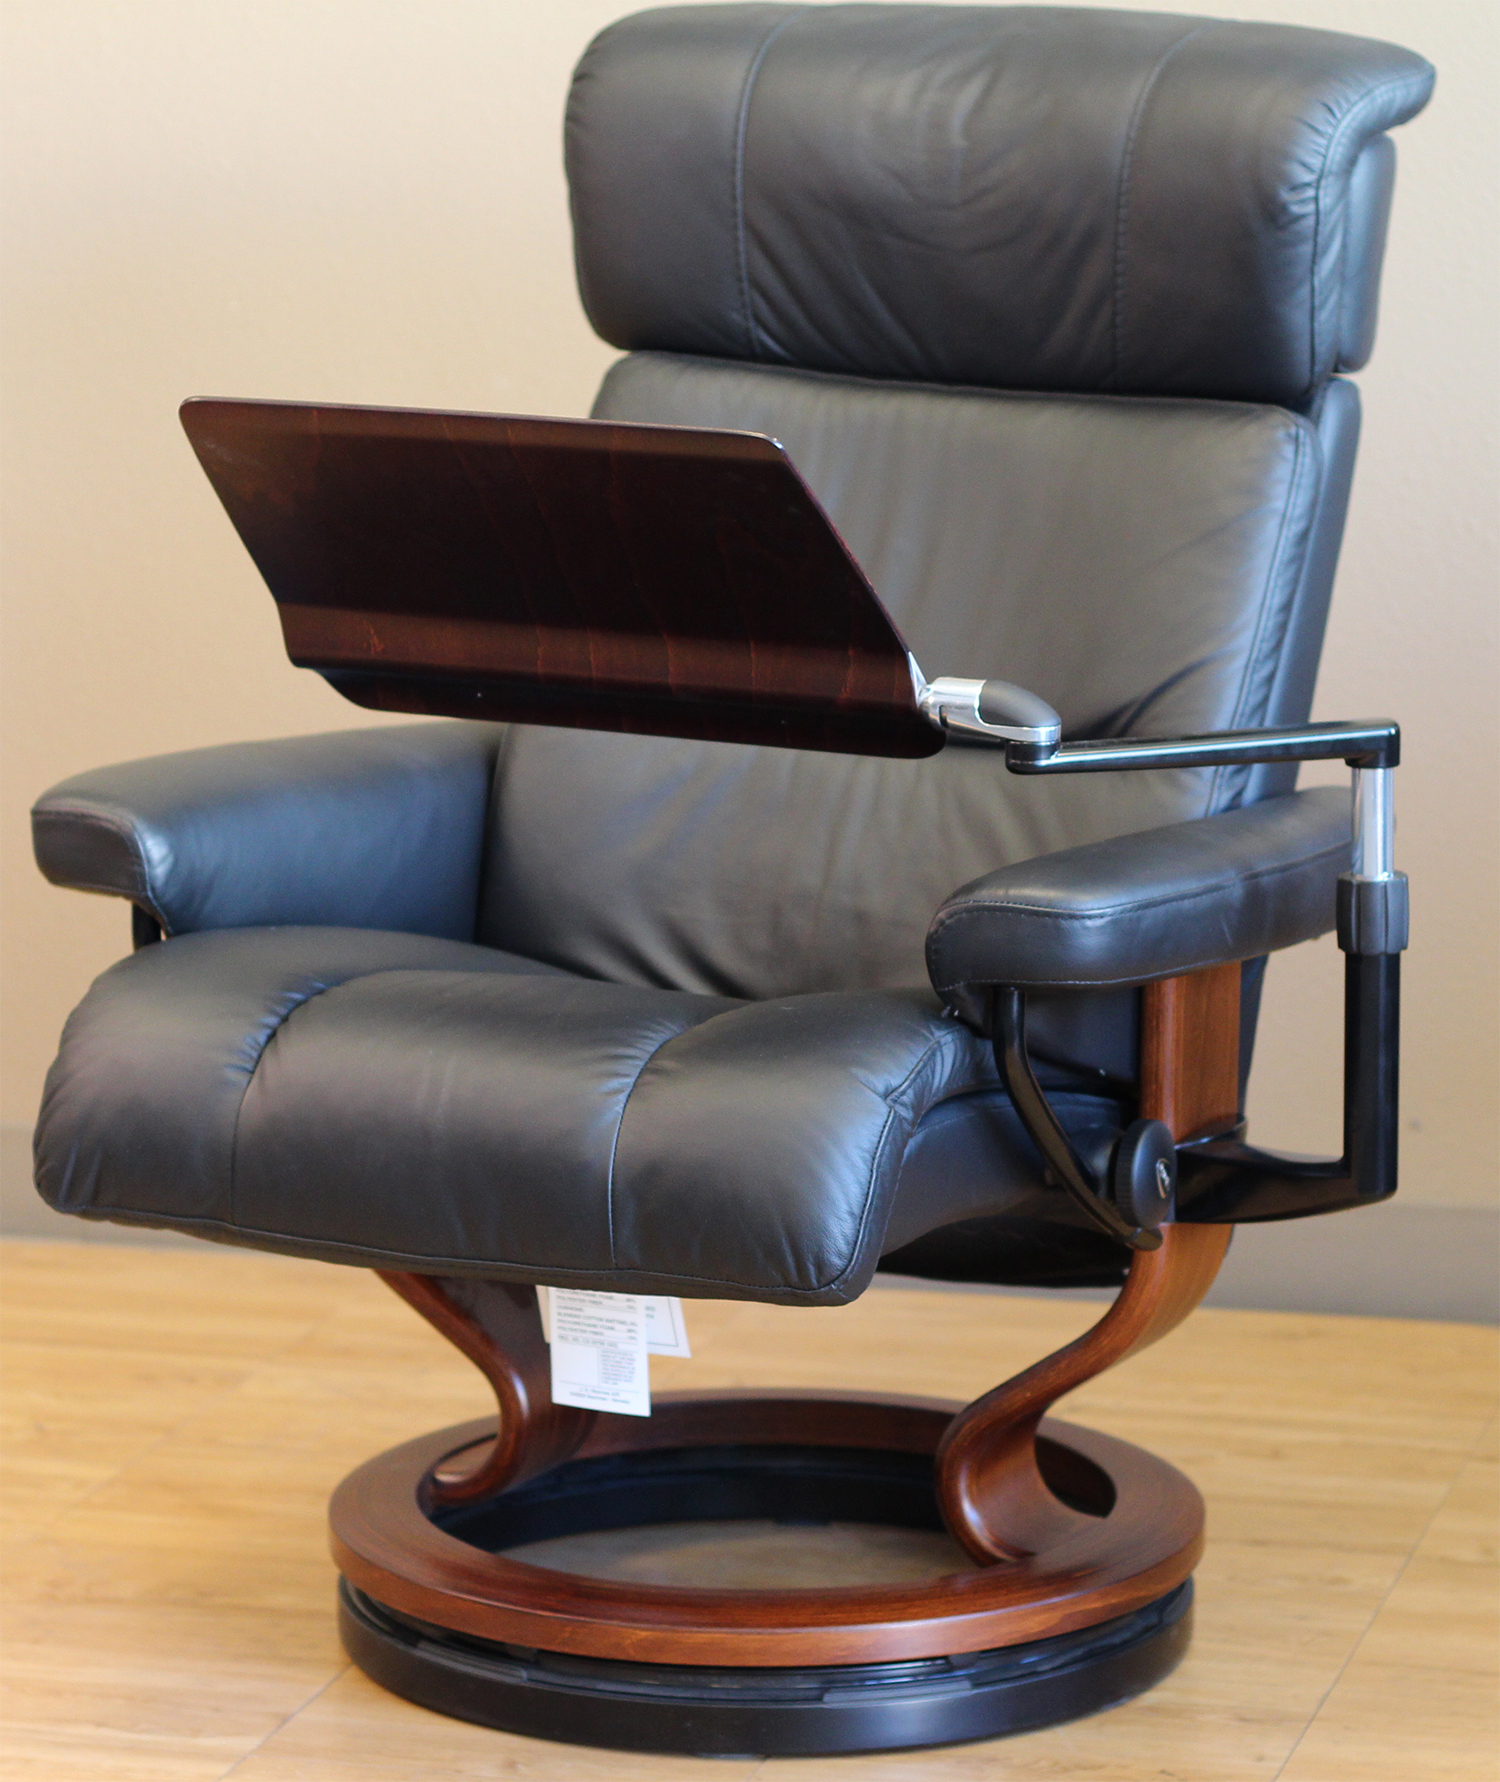 Stressless Recliner Personal Computer Laptop Table For